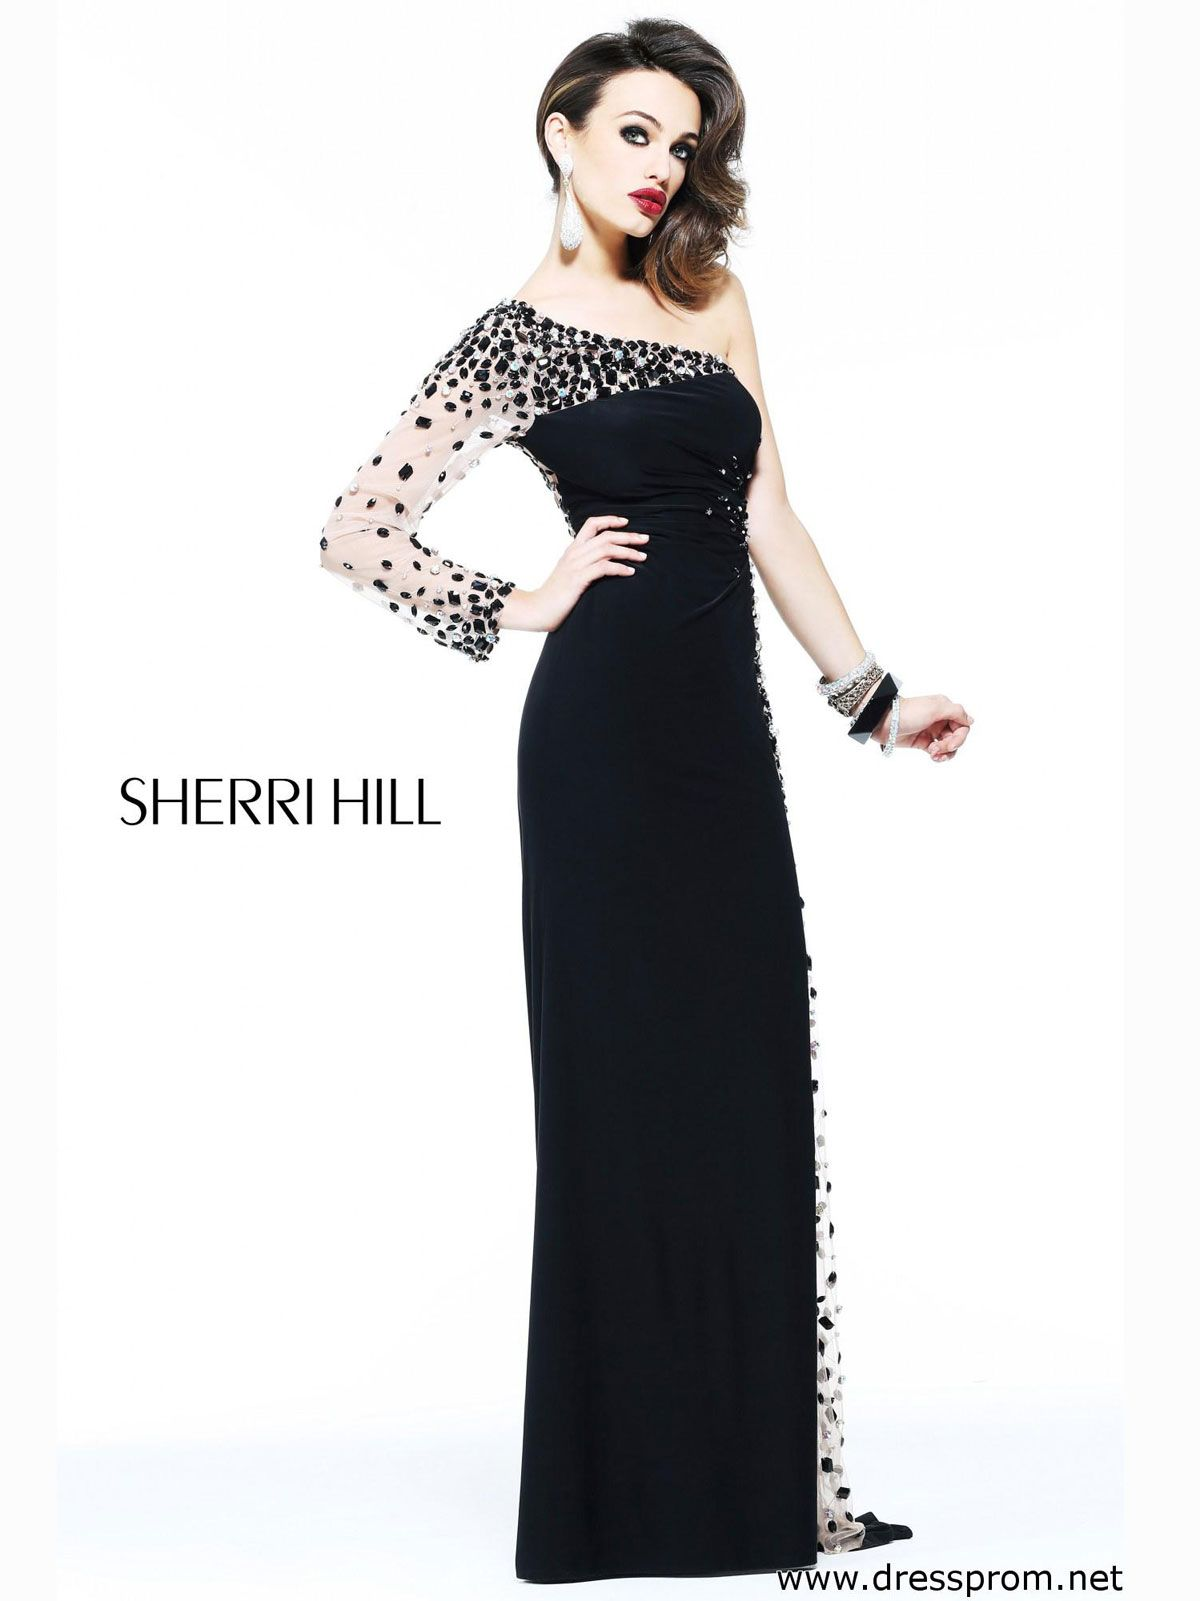 This breathtaking sherri hill evening prom gown is an absolute